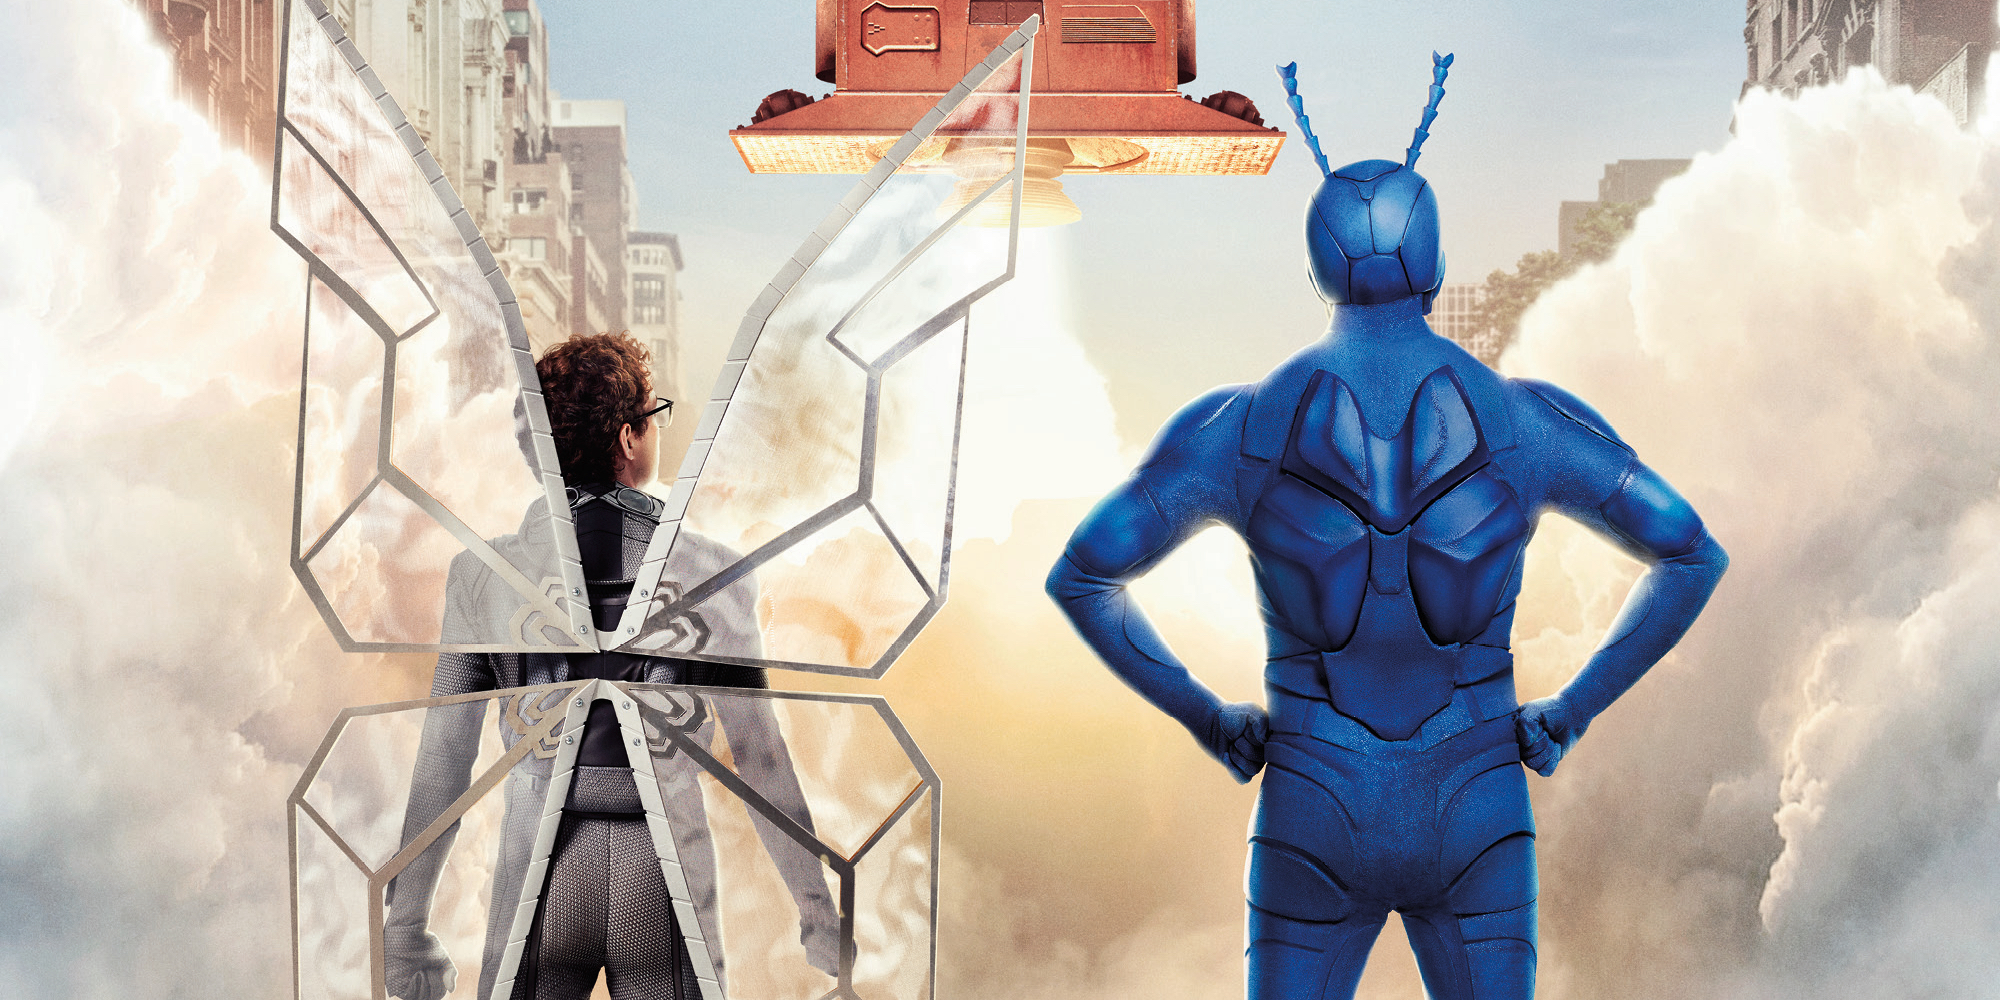 The Tick Season 1B Poster